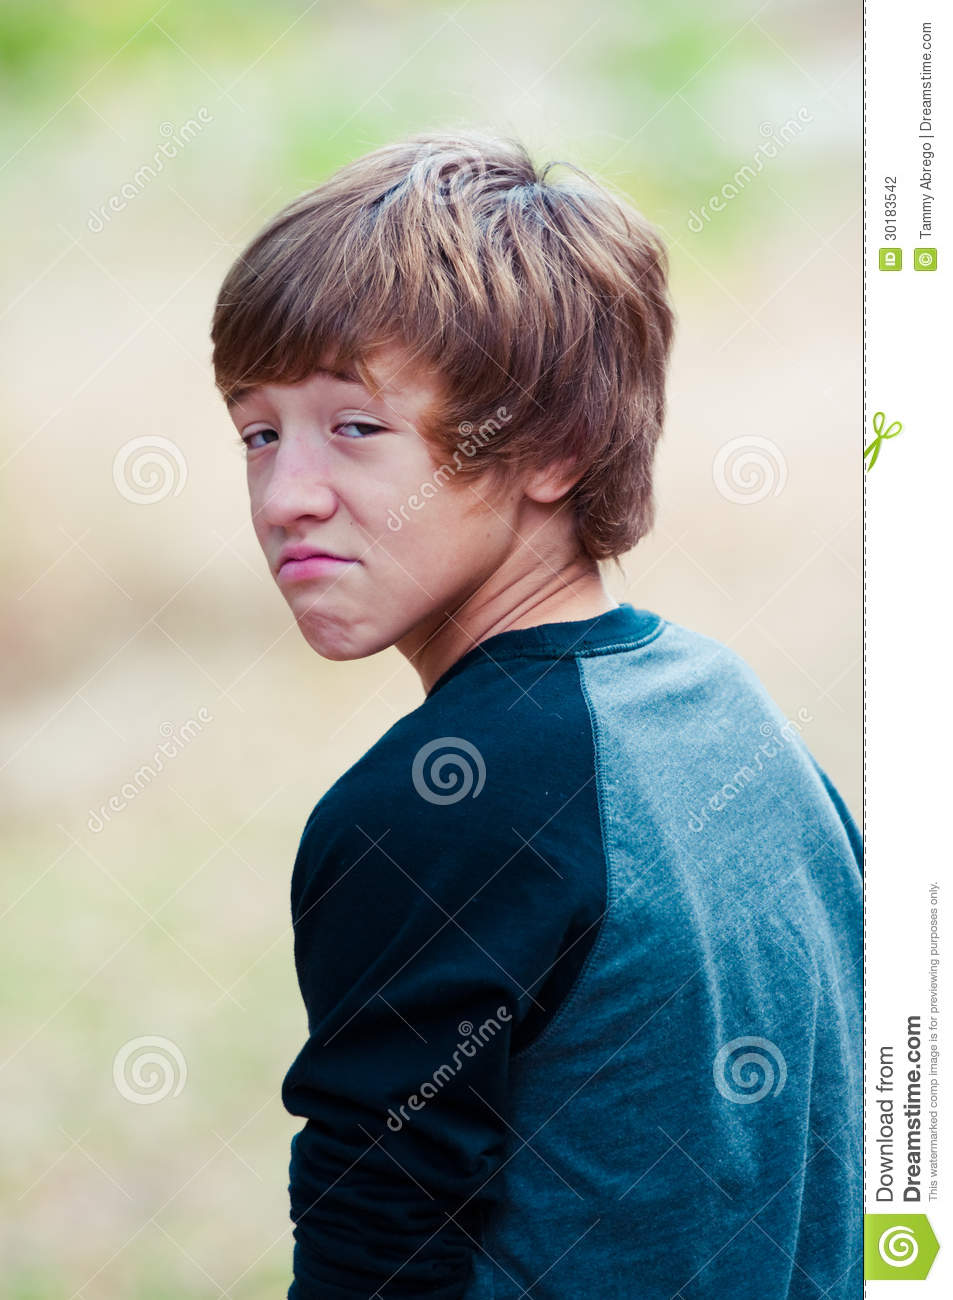 Young Teen Looking At Camera With Frown Face Stock